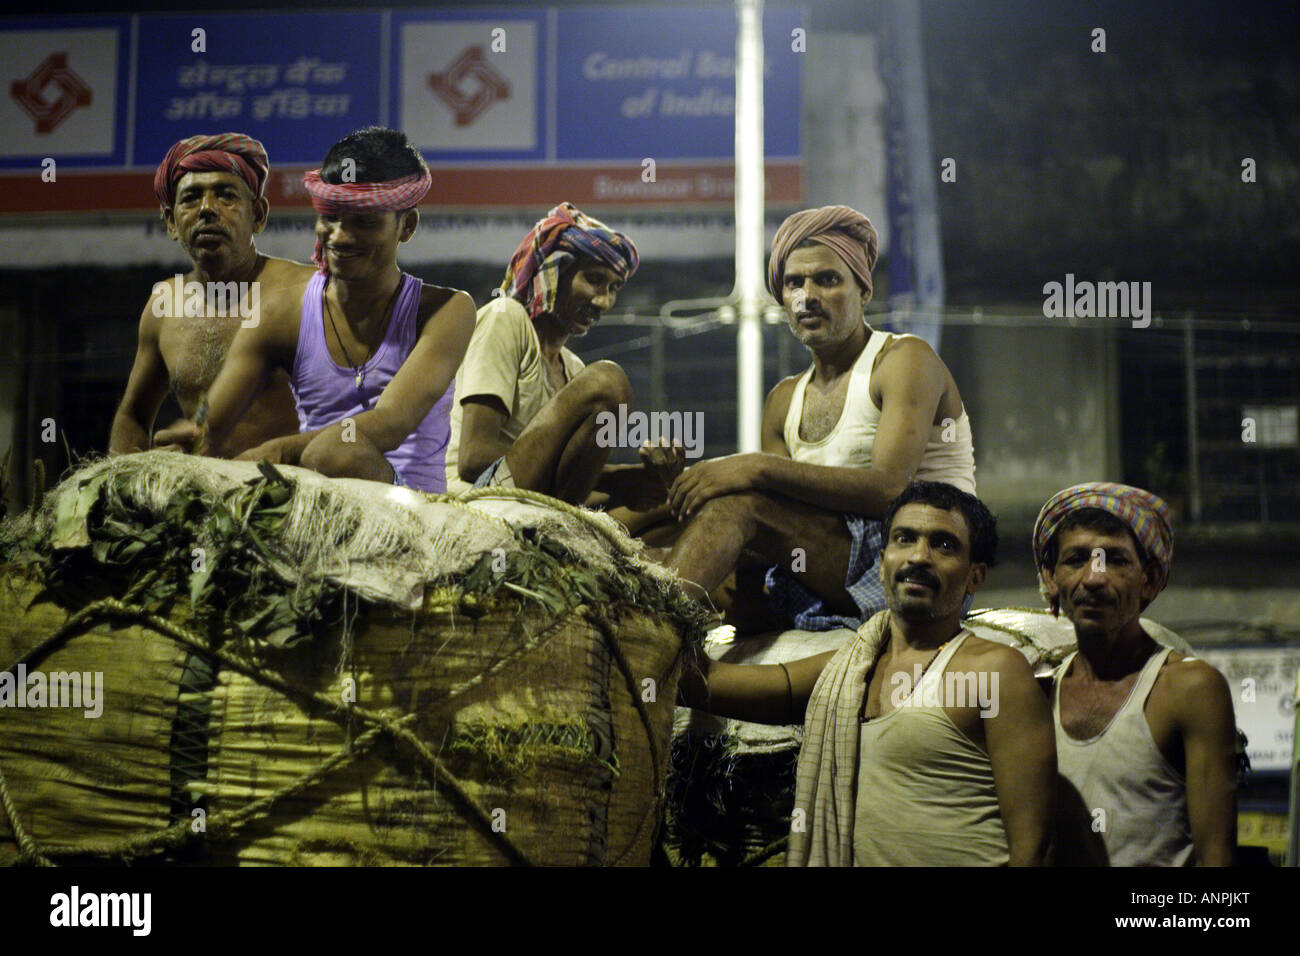 Porters at the wholesale market for fruit and vegetables in Kolkata, India. - Stock Image